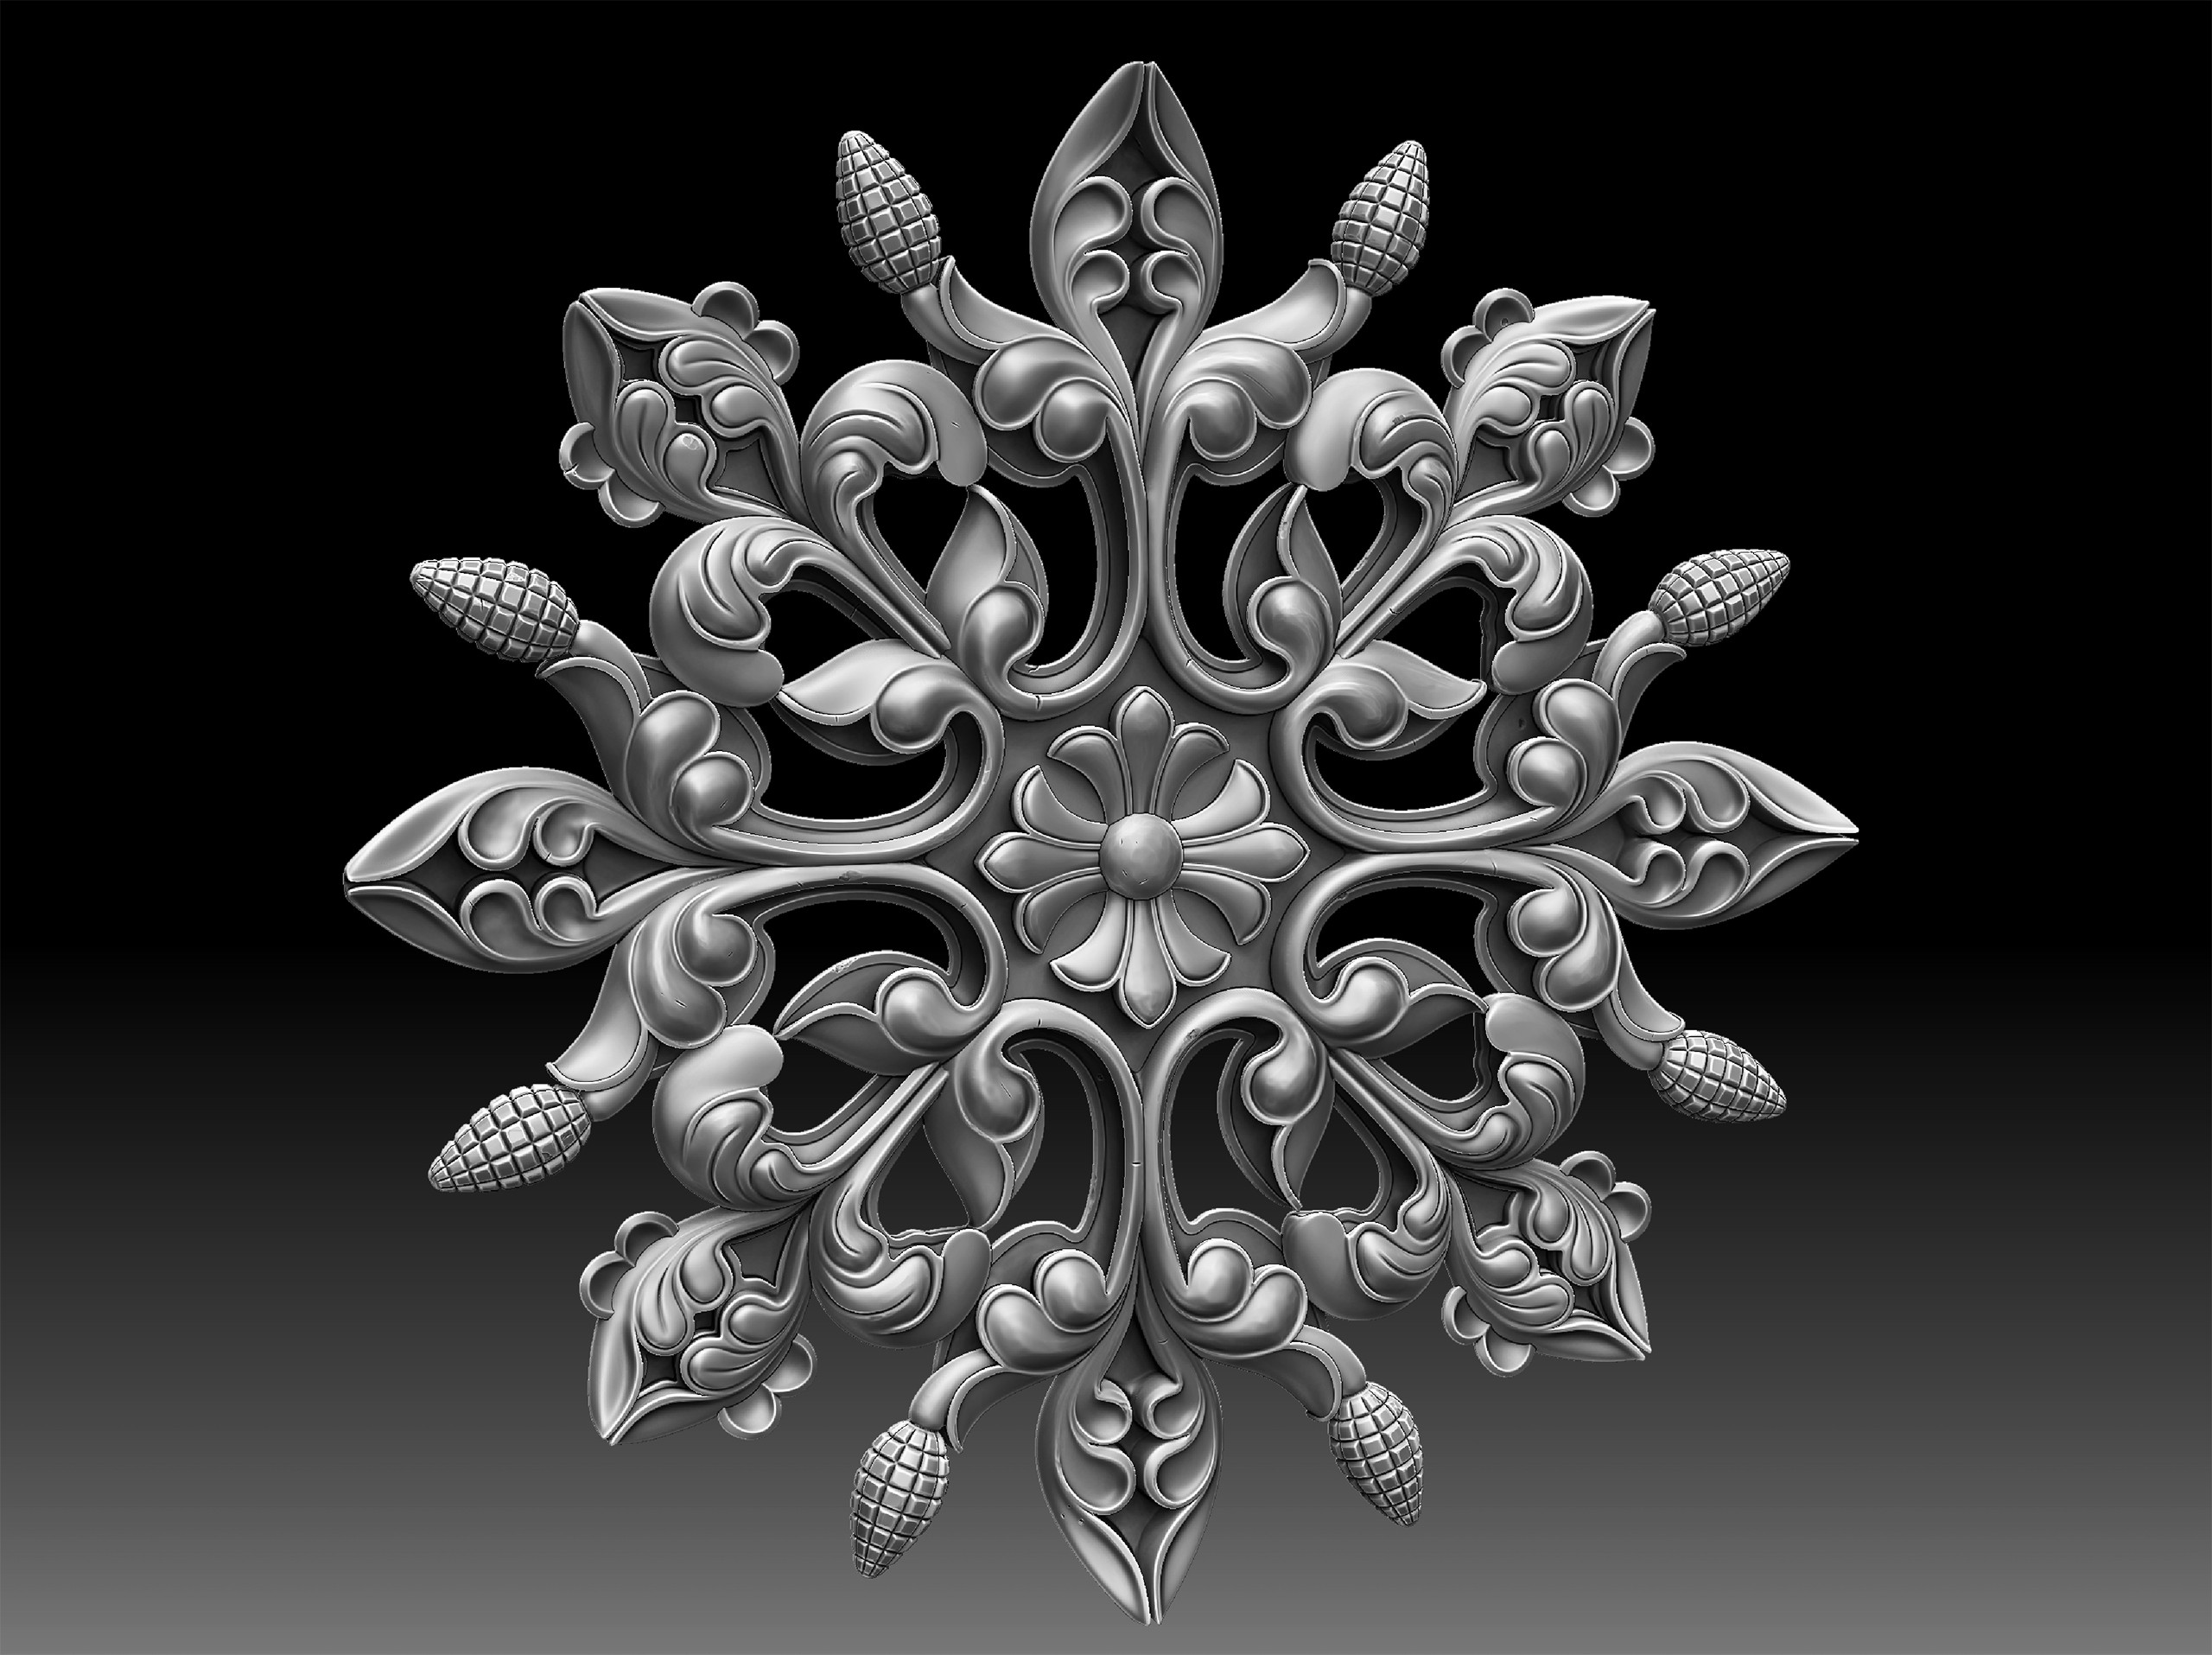 Dynameshed inside Zbrush for baking plus little scuff here and there.